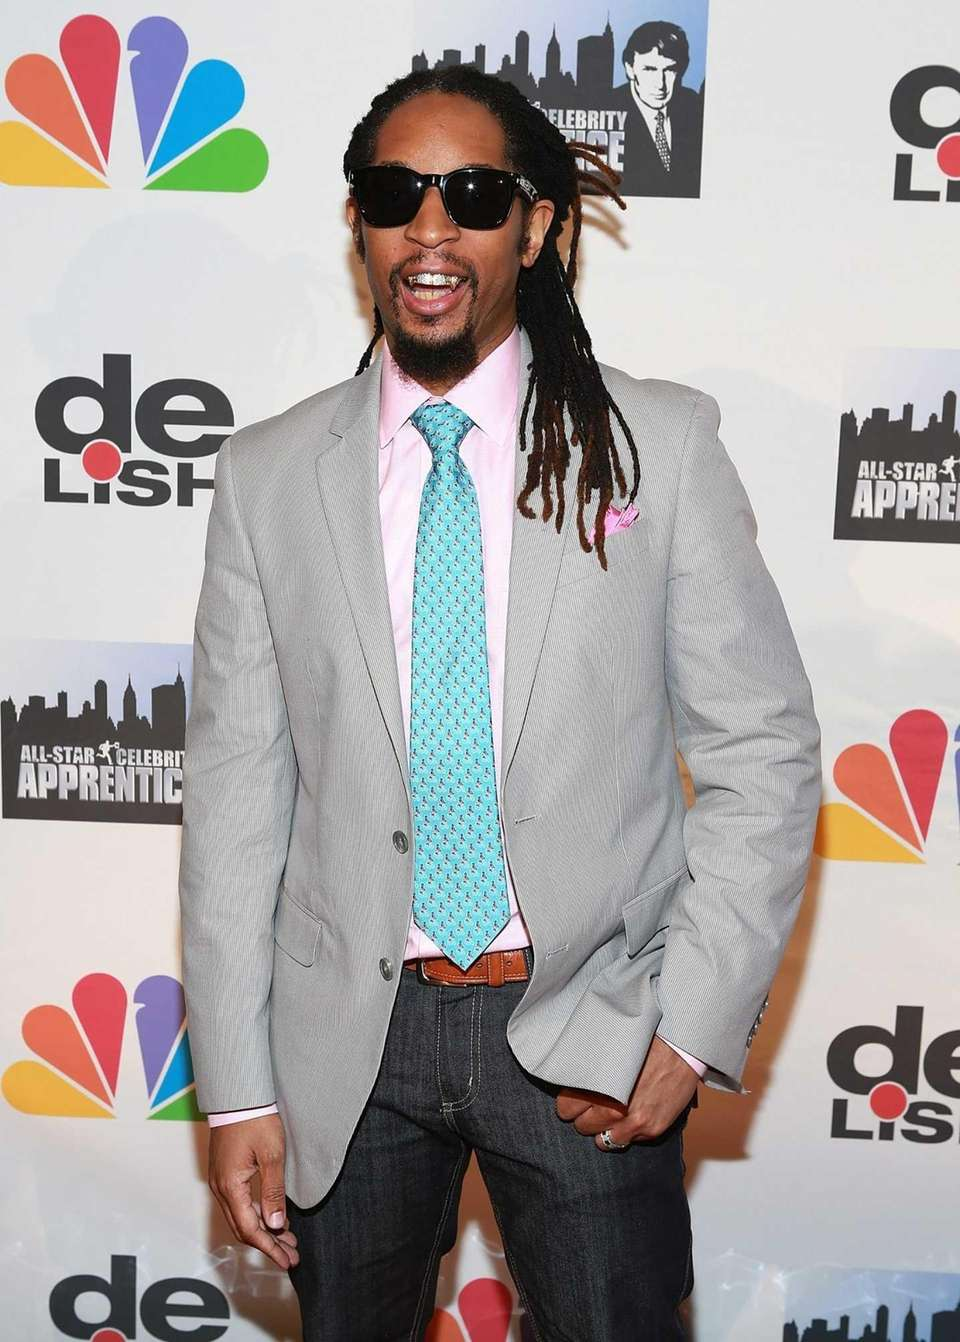 Lil Jon, born Jan. 27, 1971.